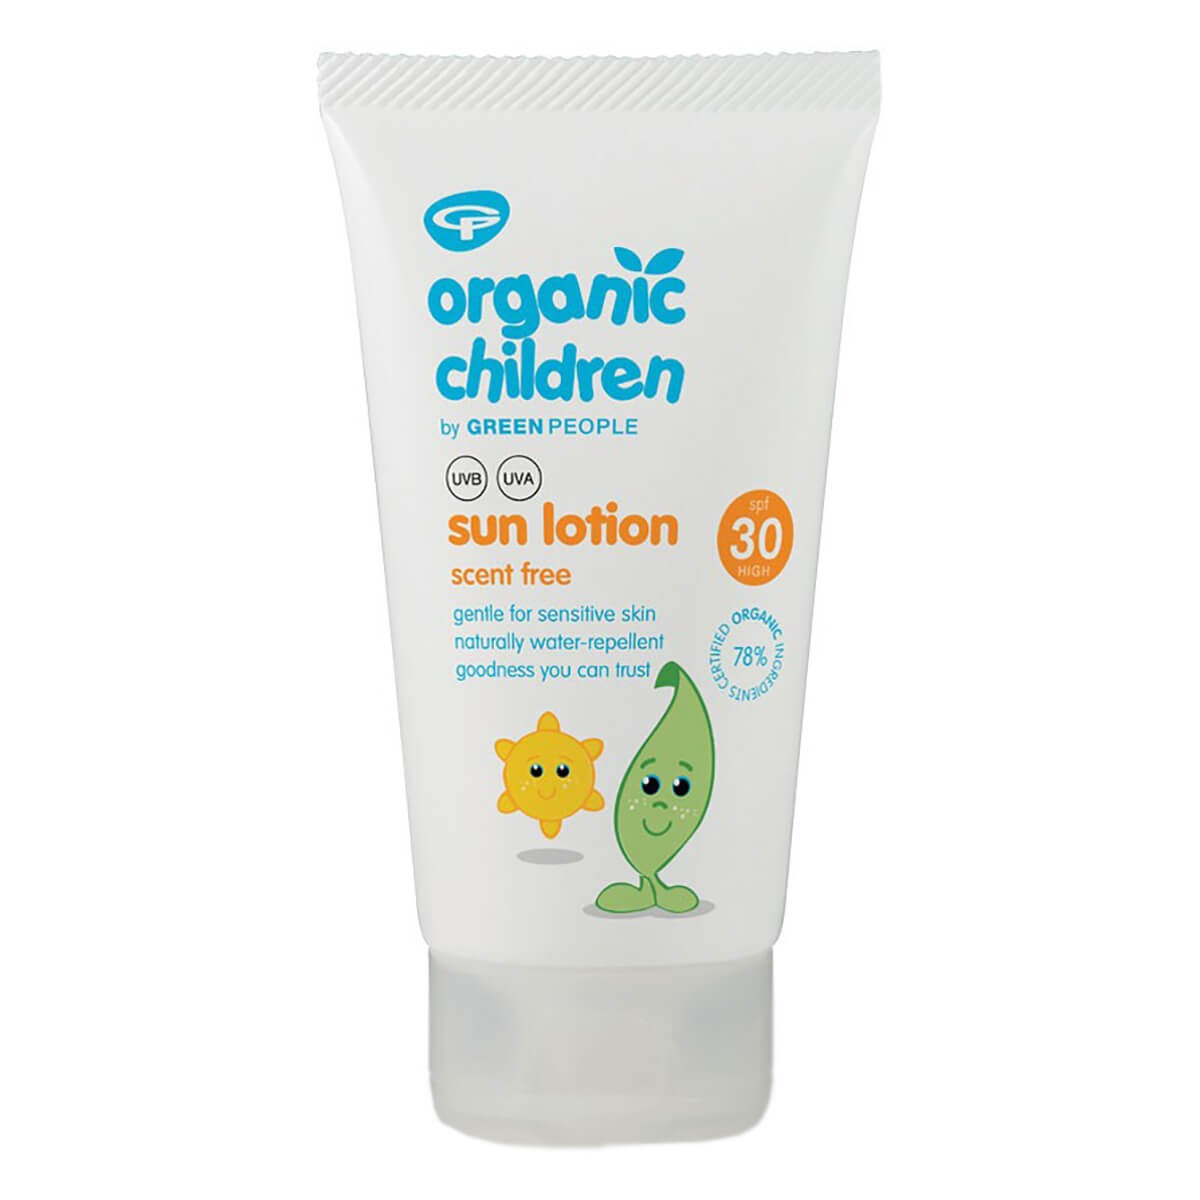 Green People Organic Children Sun Lotion SPF30 - Scent Free